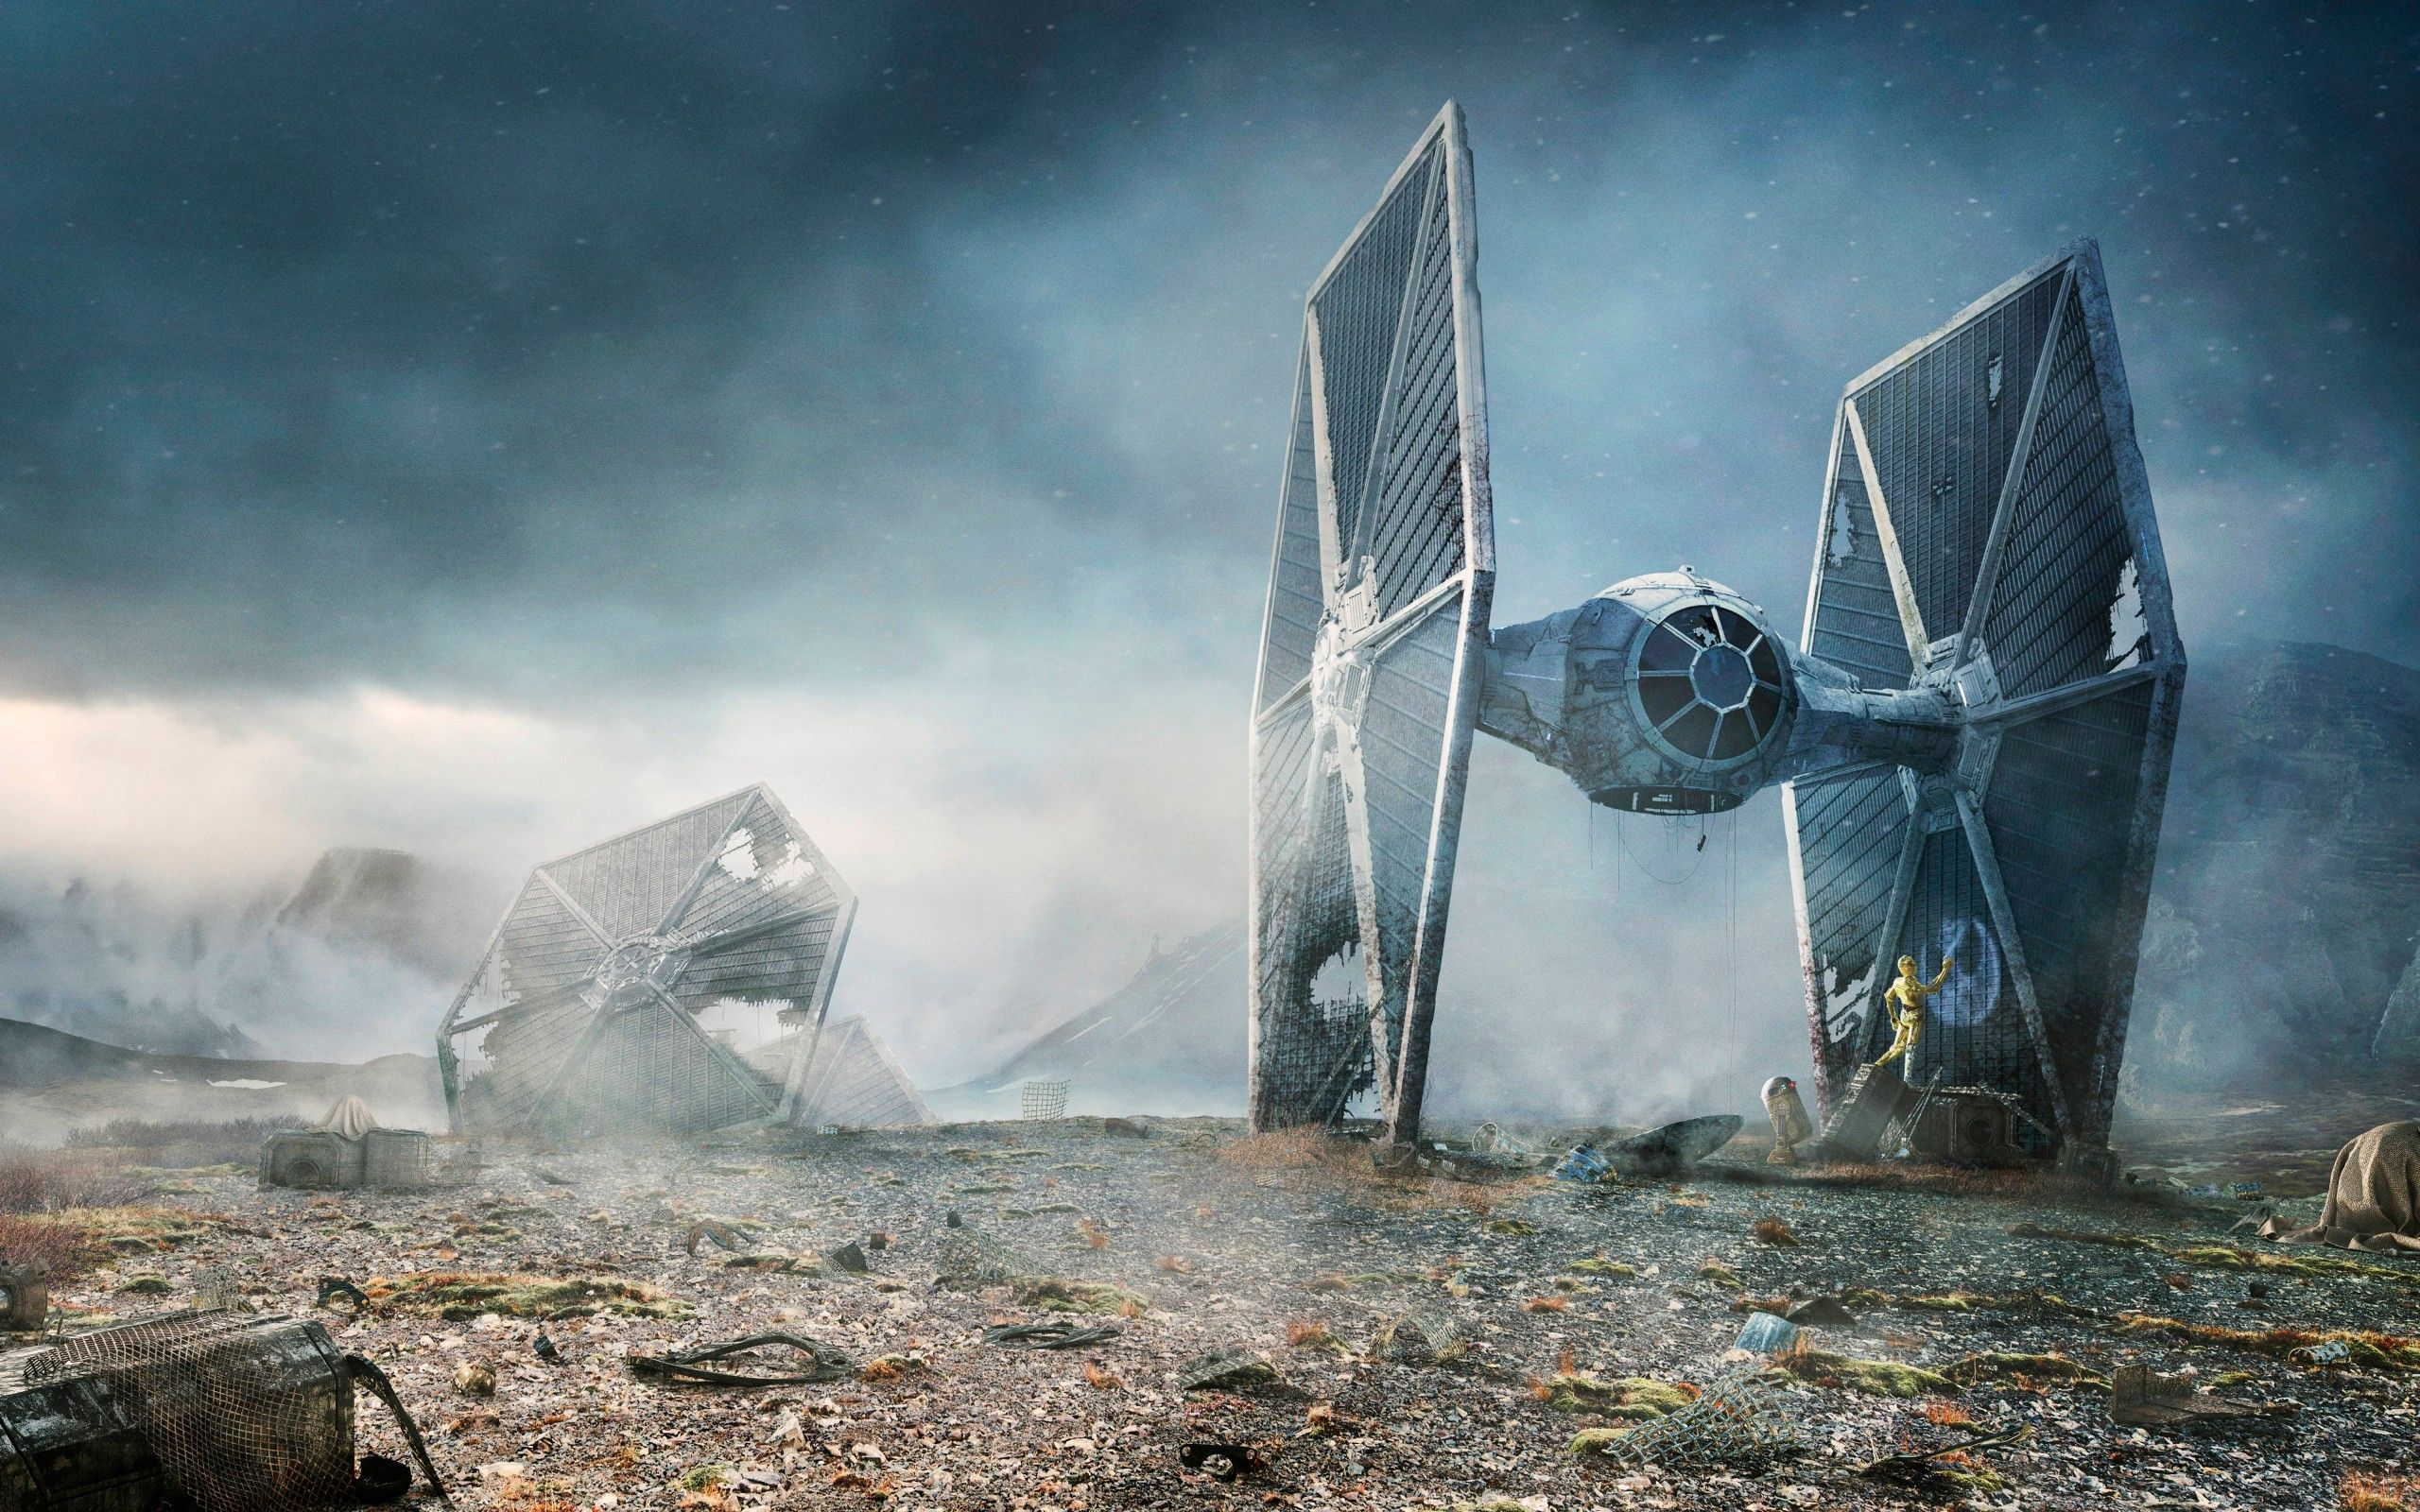 Star Wars High Resolution Wallpaper Posted By Ryan Walker